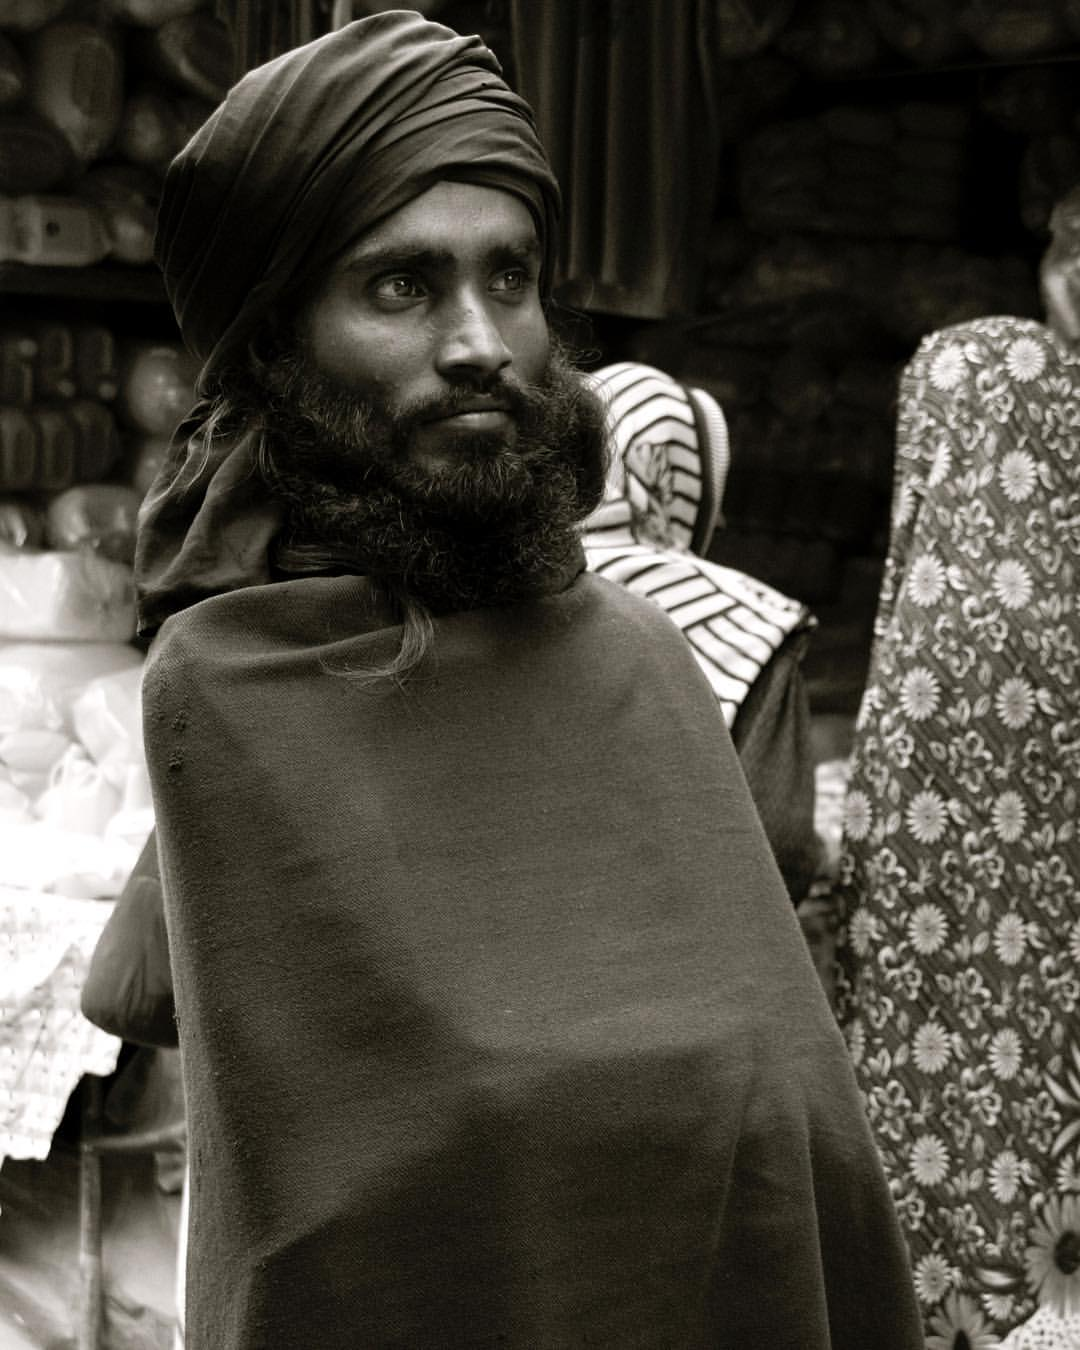 Searching for another photo I came across this image I took of a sadhu in the North Indian mountains. I remember this clearly.He saw me and posed for about 3 seconds amidst the chaos. A memory and moment I wouldn't have had without a camera. #i❤️photography #throughmylens #travellingdays #nostalgia #india #byronbayphotographer  (at Rishikesh, Uttarakhand)